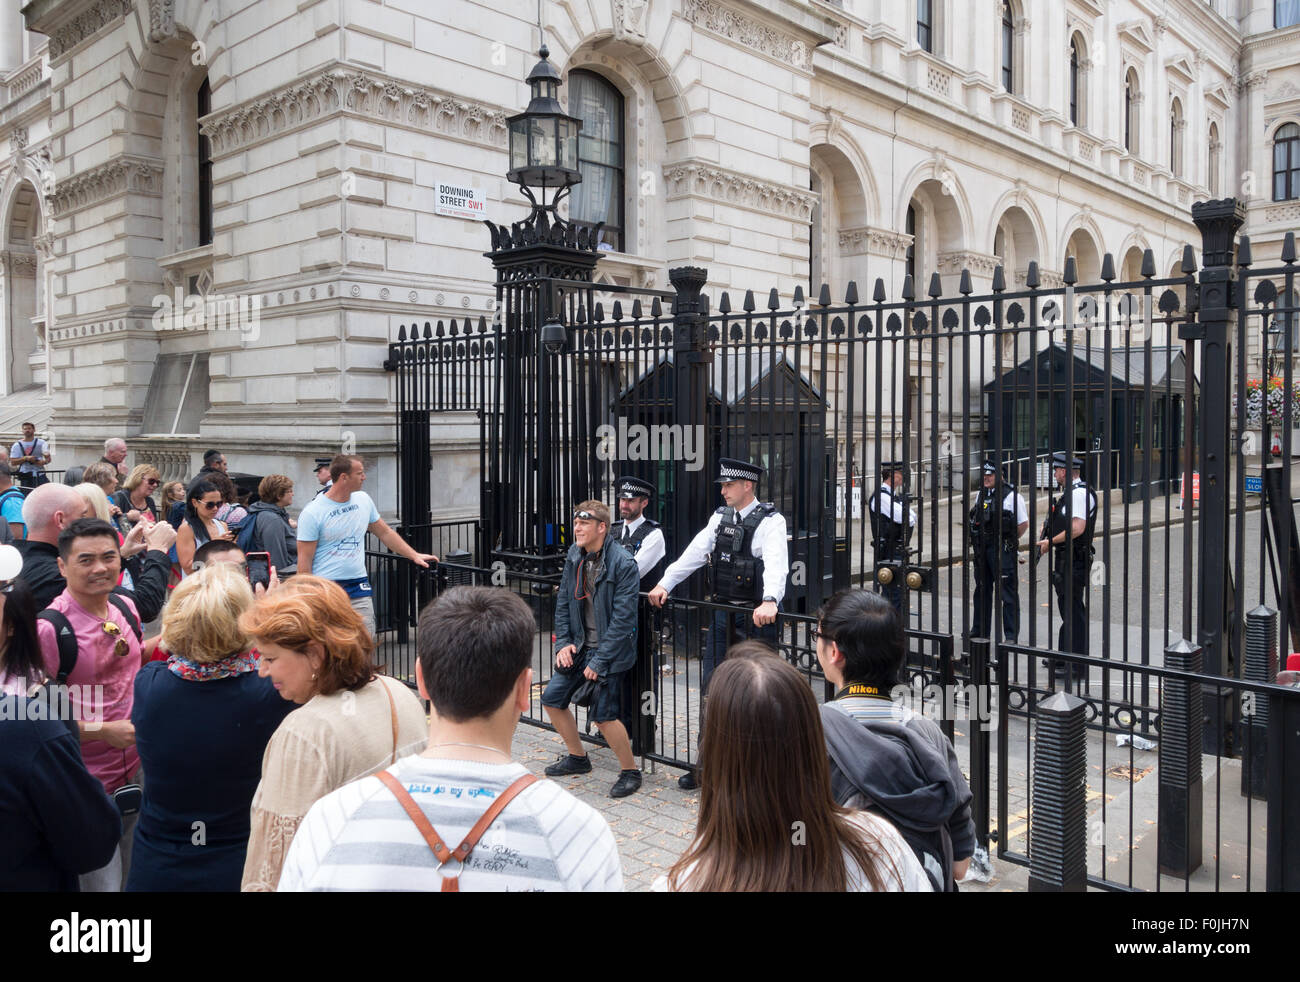 Tourists posing for photos with Police at the gates at the entrance to Downing Street, London England UK - Stock Image